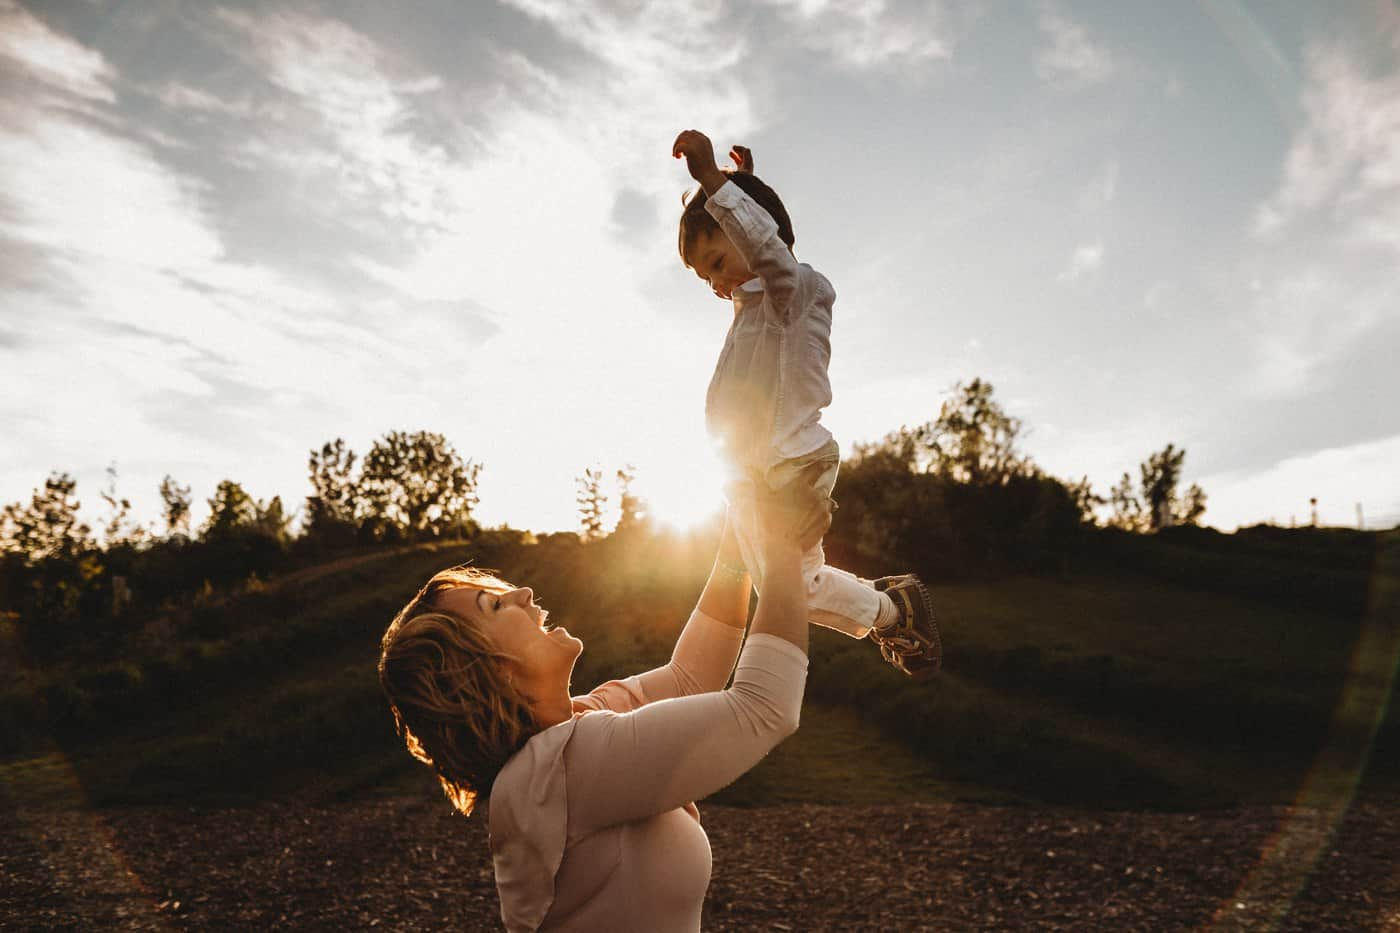 Mother and son outside at sunset, swinging little boy in the air and laughing